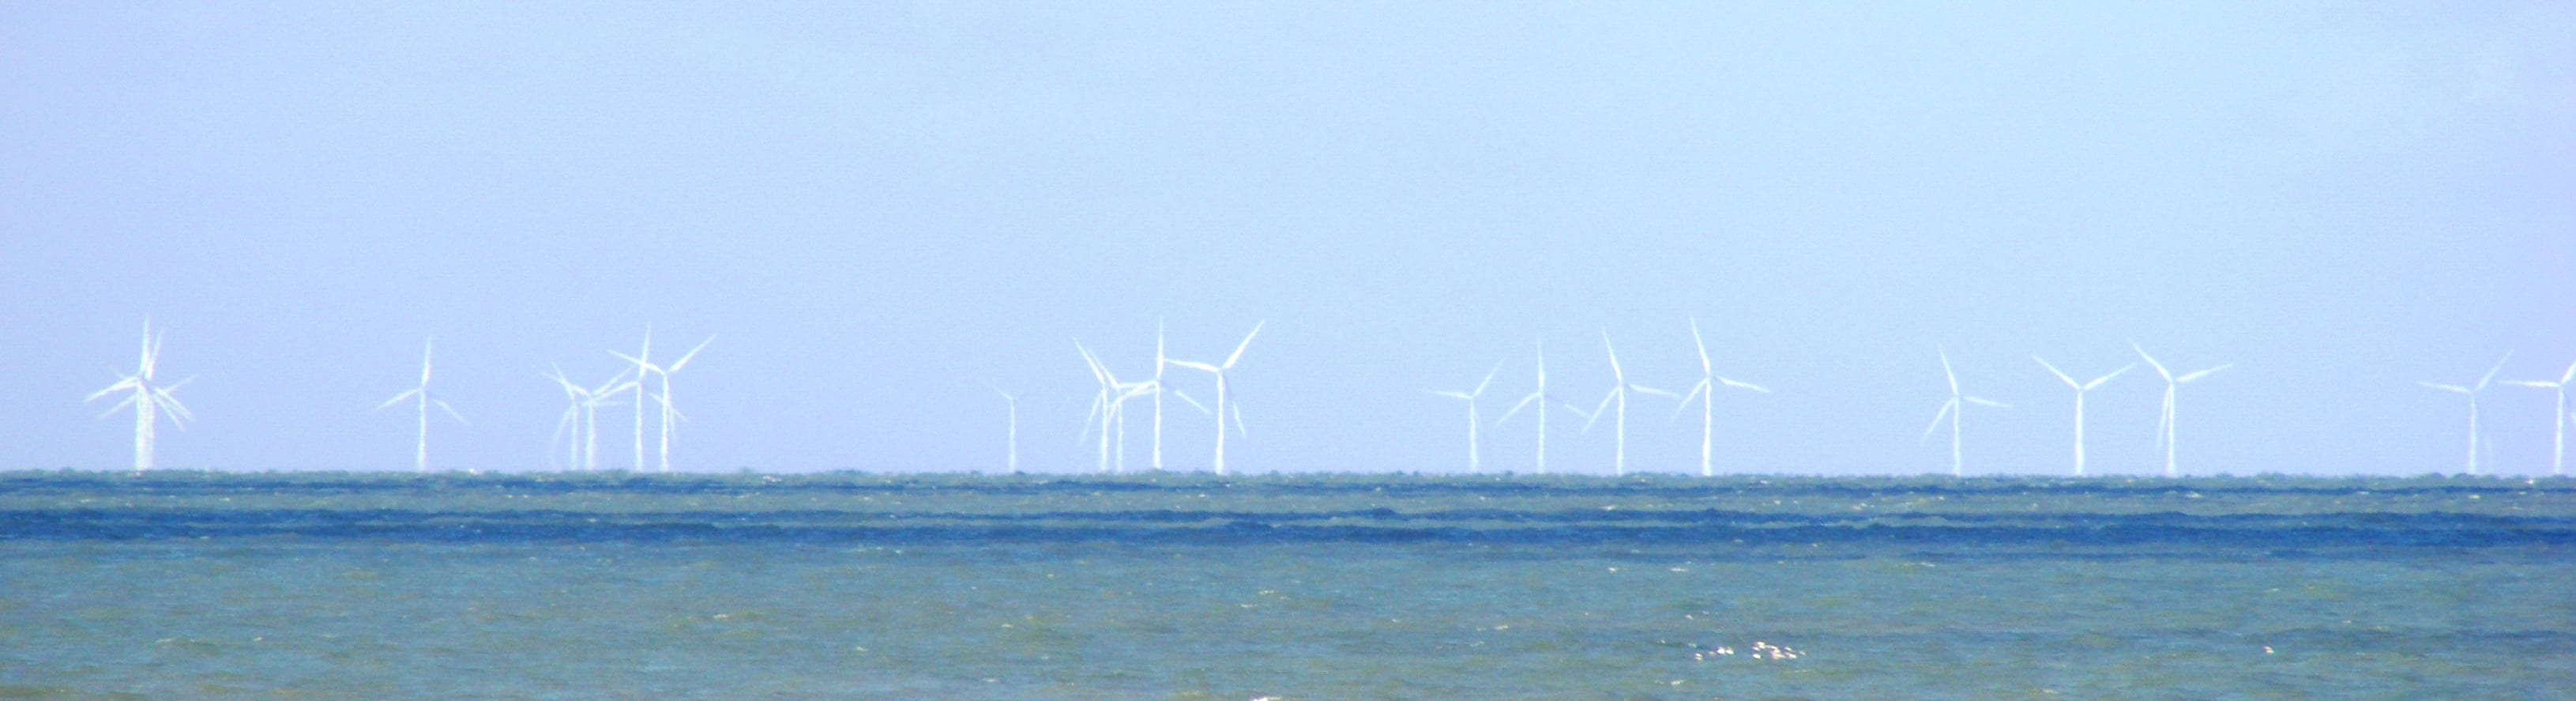 Siemens makes a deal with offshore wind energy project